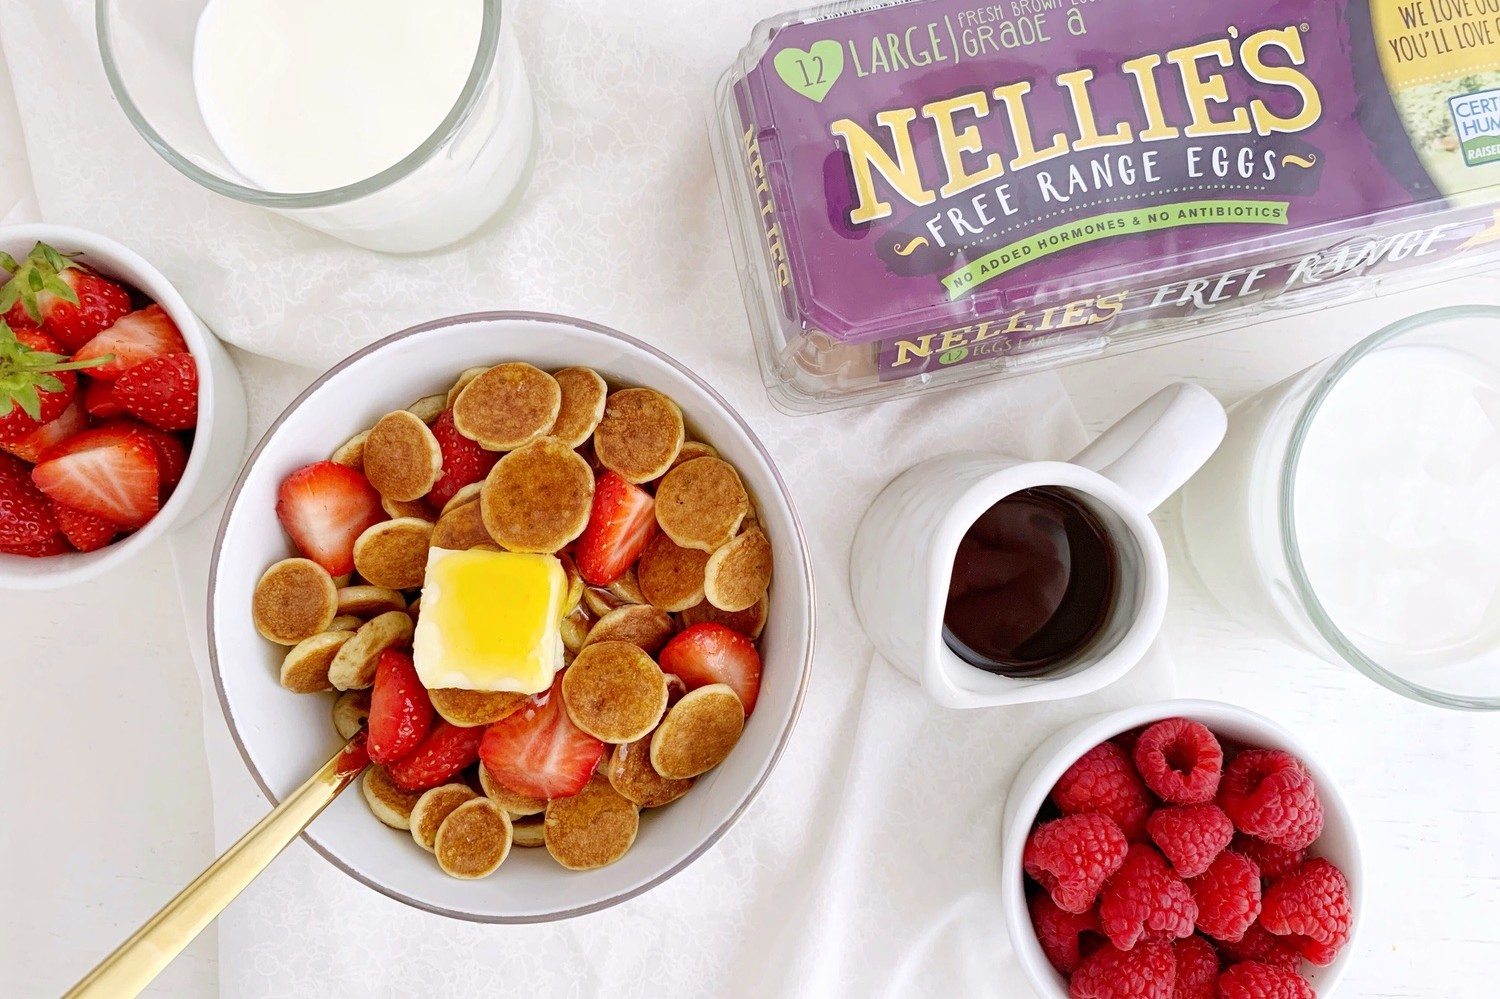 Mini buttermilk pancakes topped with a pat of butter, maple syrup. and served in a bowl with a spoon. | nelliesfreerange.com